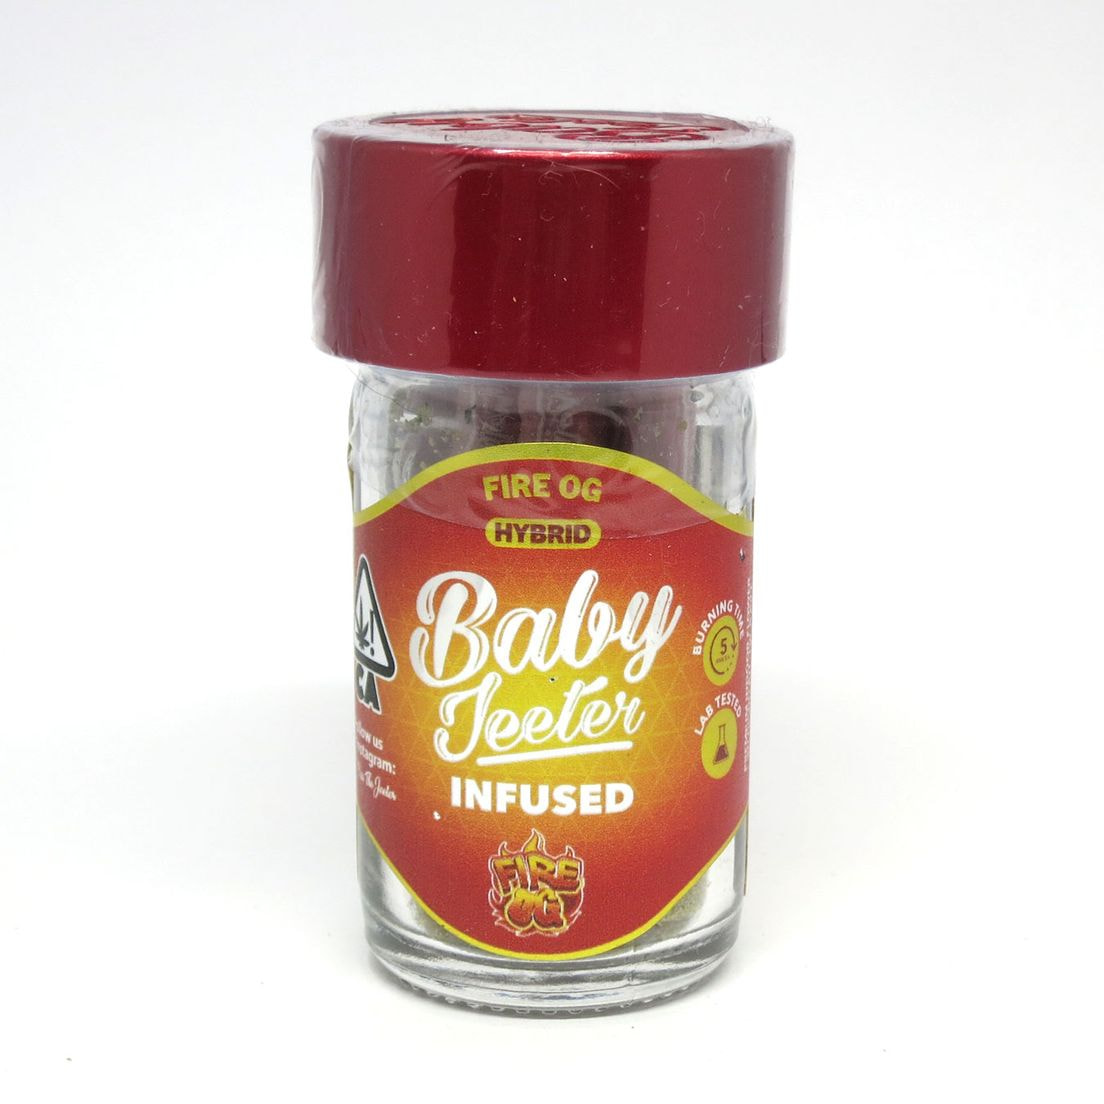 Baby Jeeter Infused - Fire OG